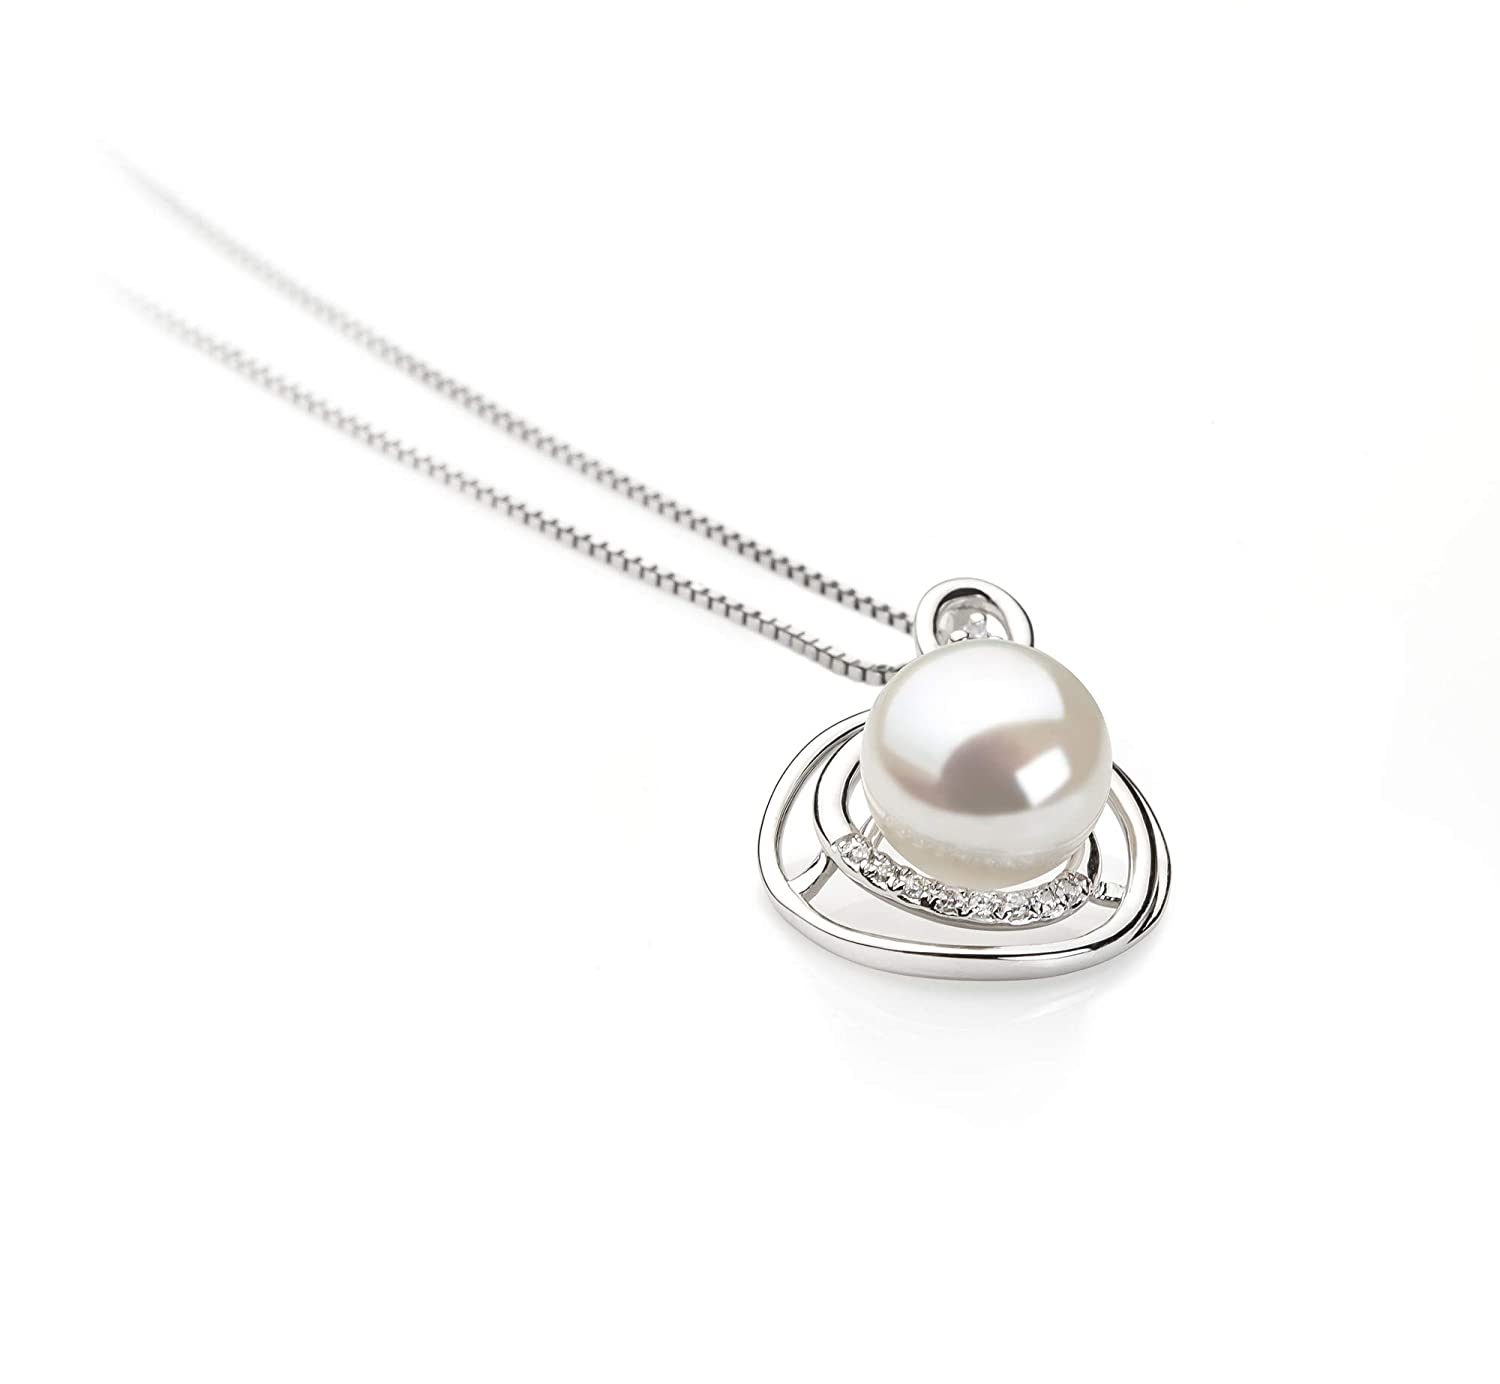 Kelly 9-10mm AA Quality Freshwater 925 Sterling Silver Cultured Pearl Pendant For Women